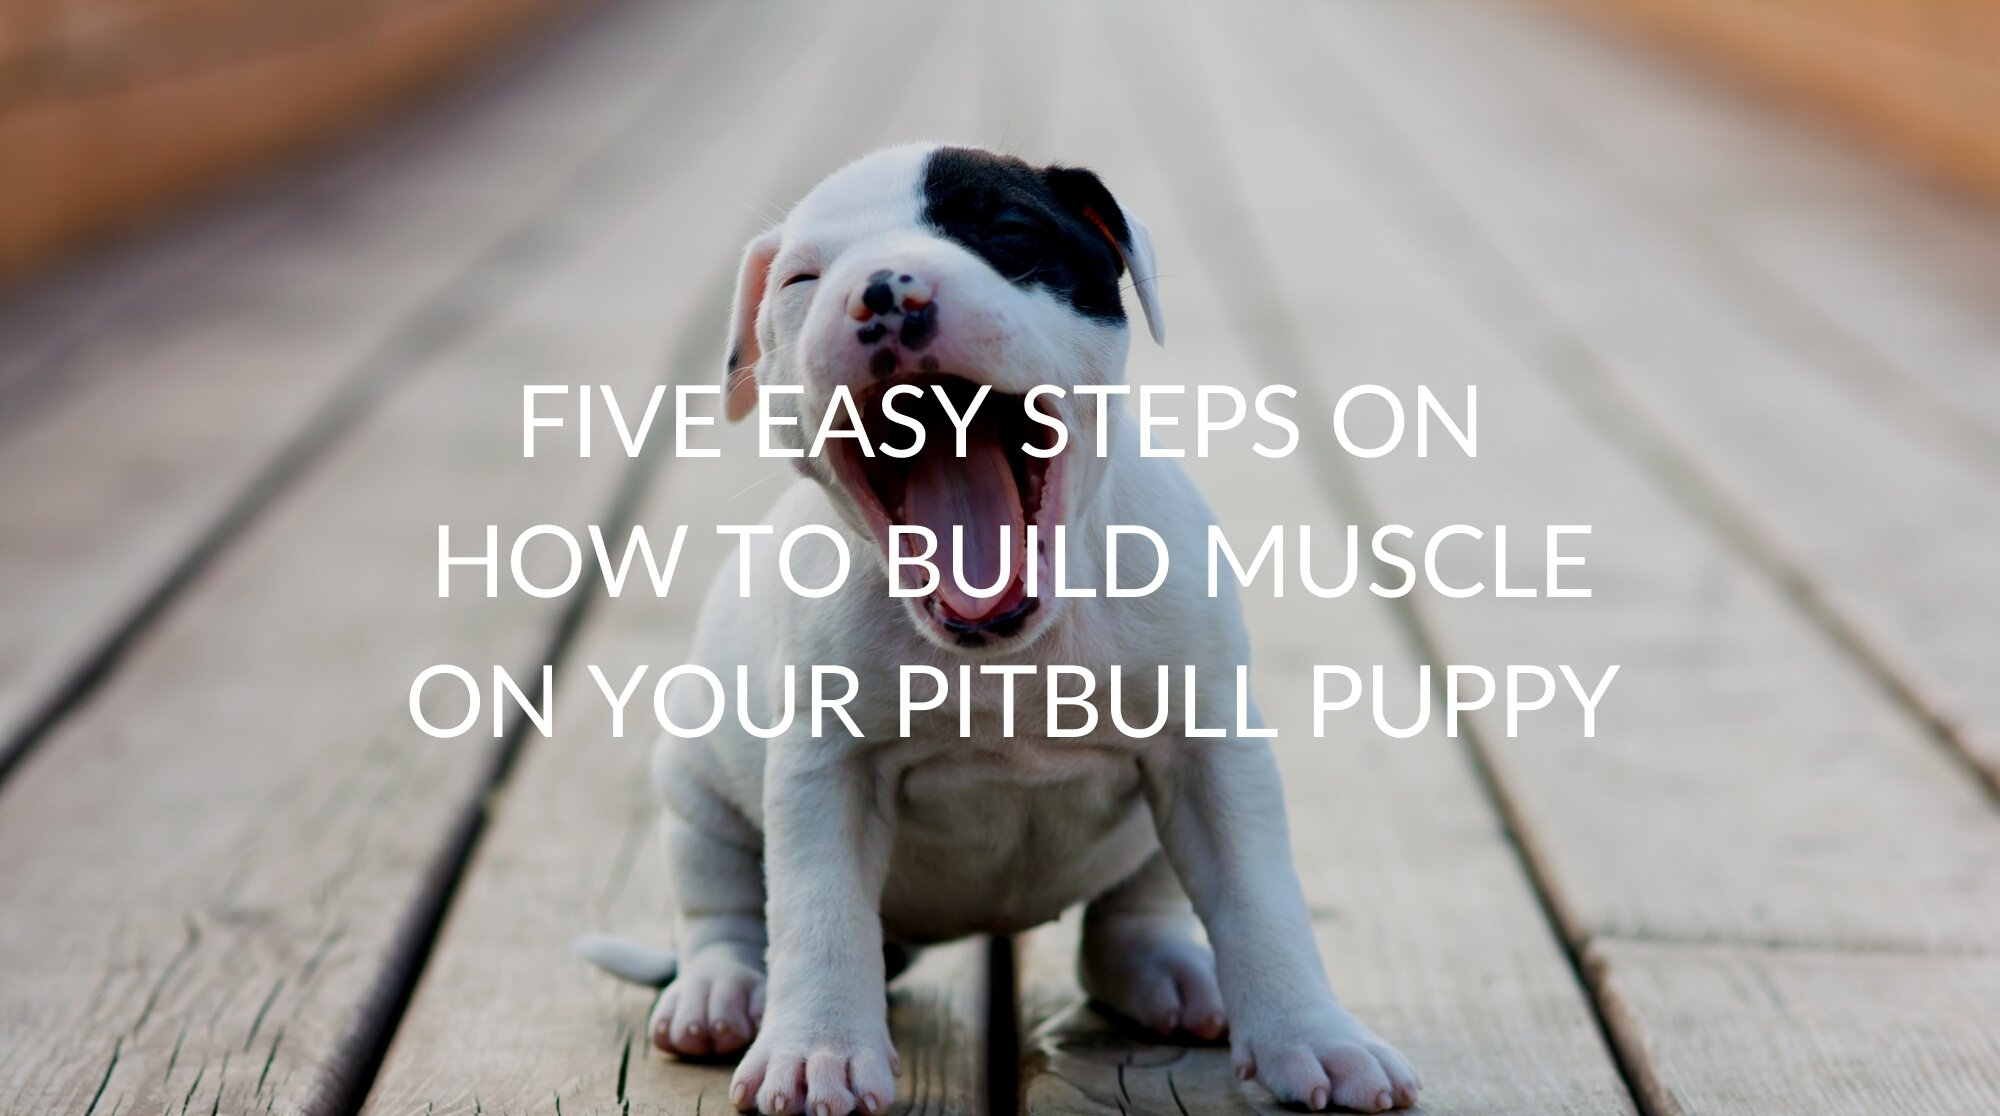 Five Easy Steps on How to Build Muscle on Your Pitbull Puppy